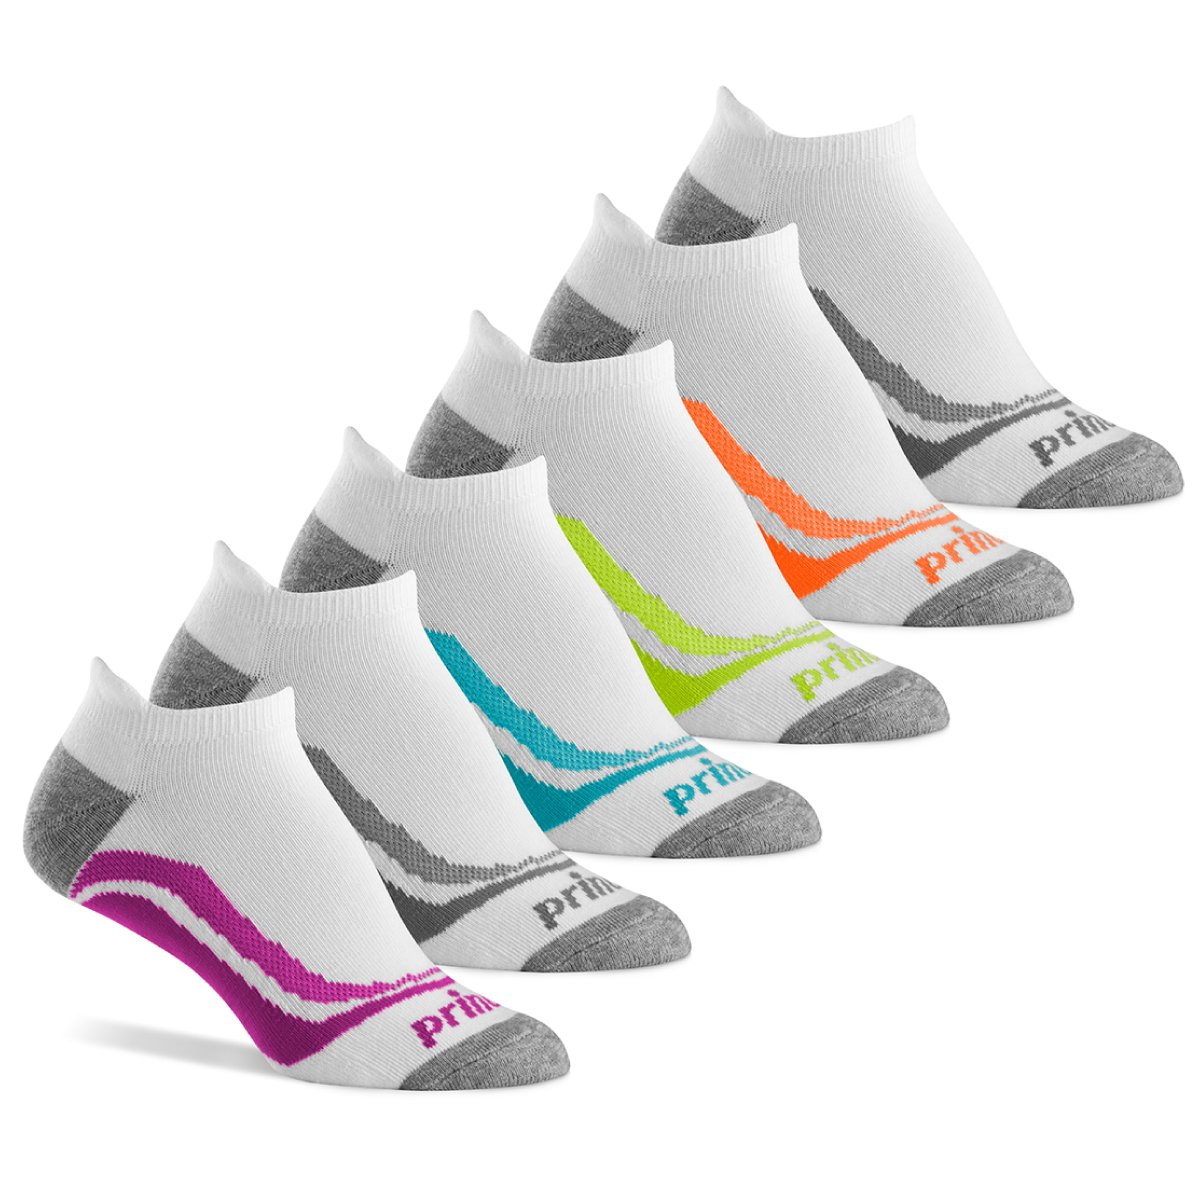 Prince Women's Tab Performance Athletic Socks for Running, Tennis, and Casual Use (6 Pair Pack) (Women's Shoe Size 8-12 (US), White)